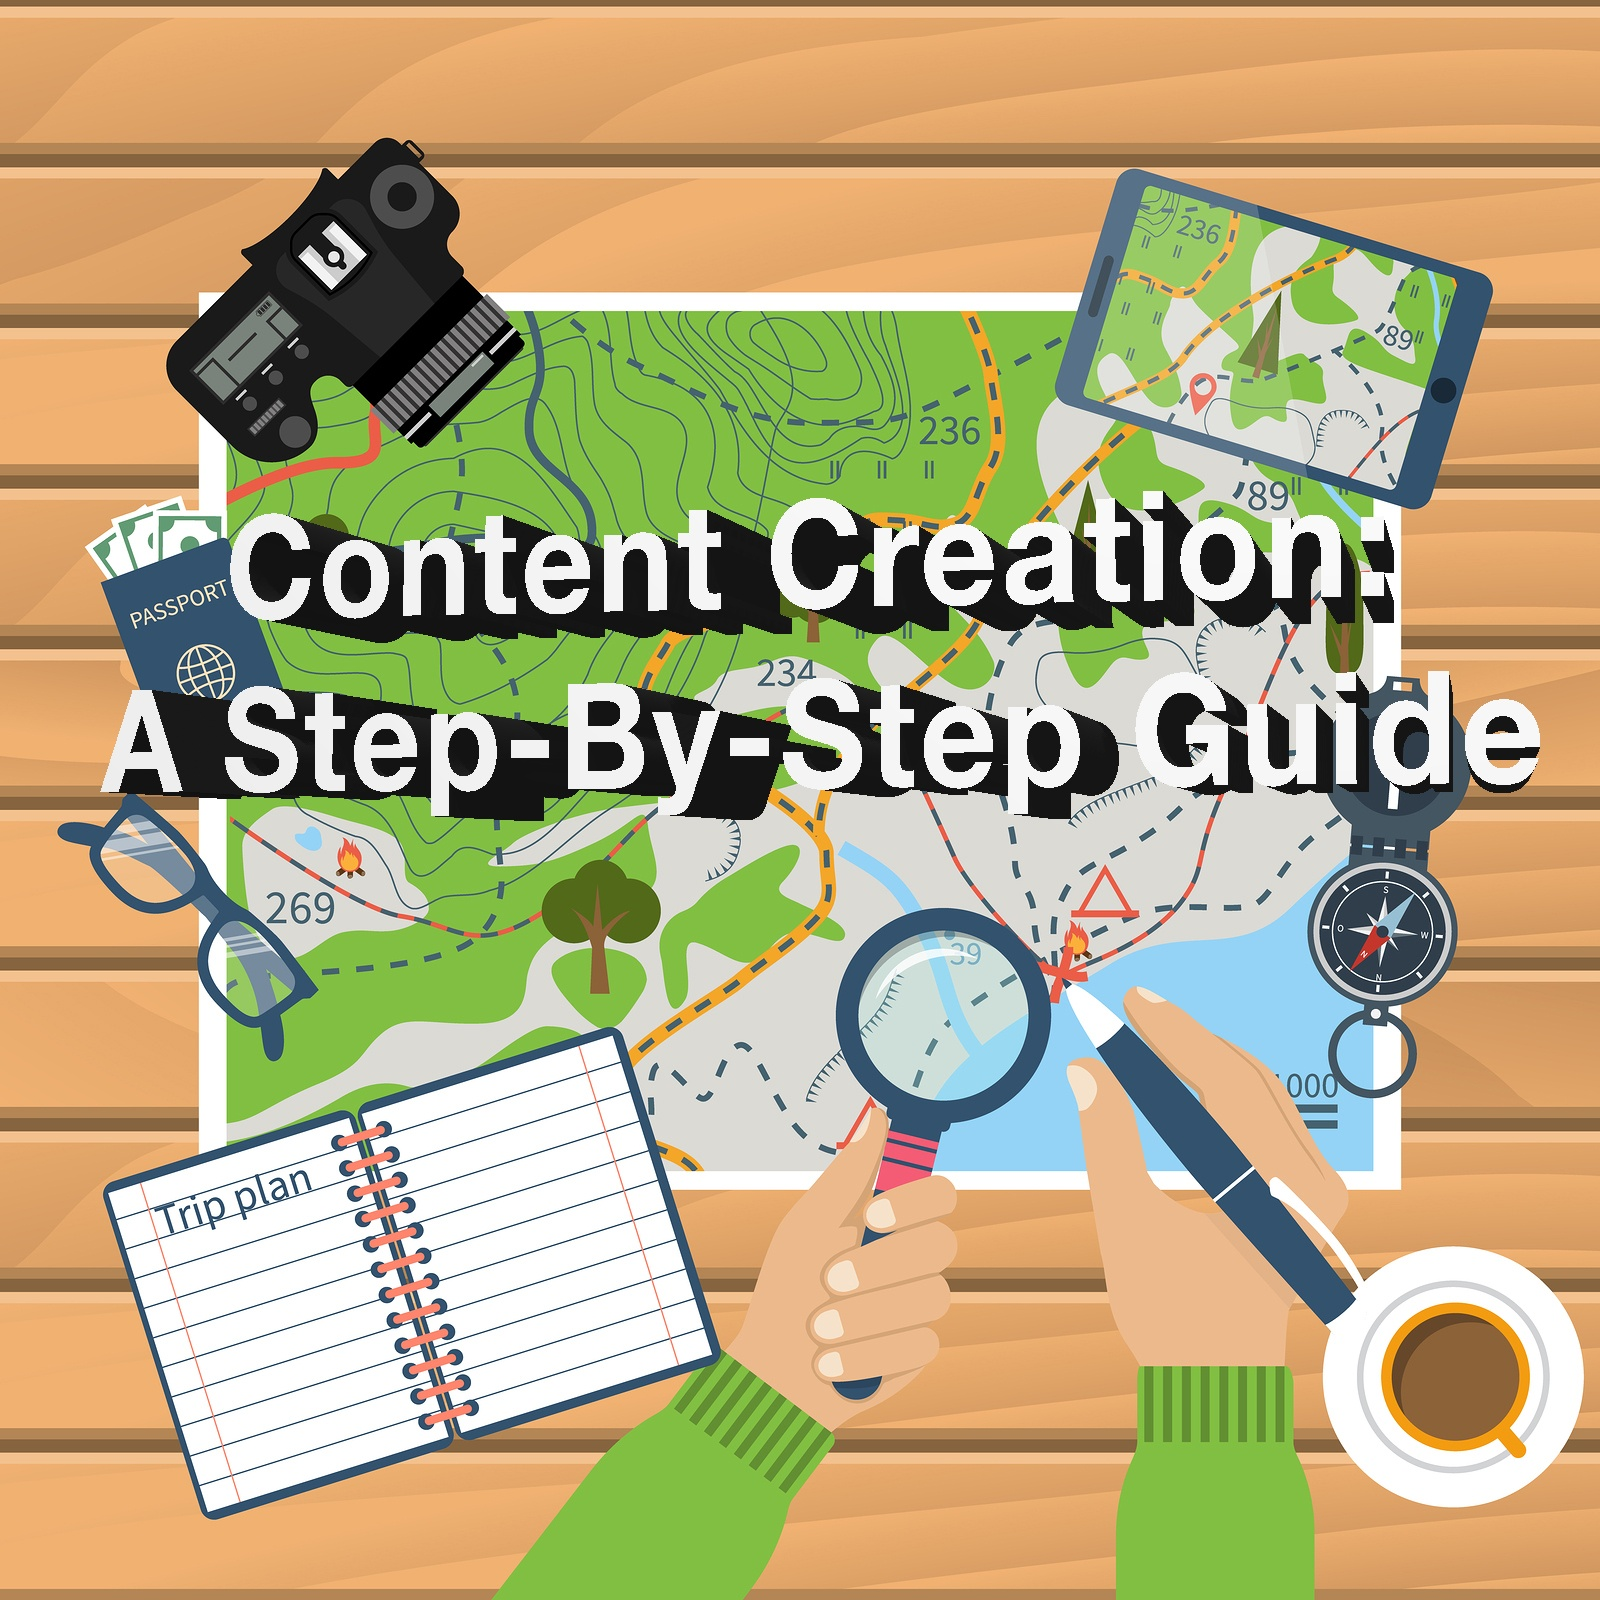 Content_Creation_Step_by_Step_Guide.jpg